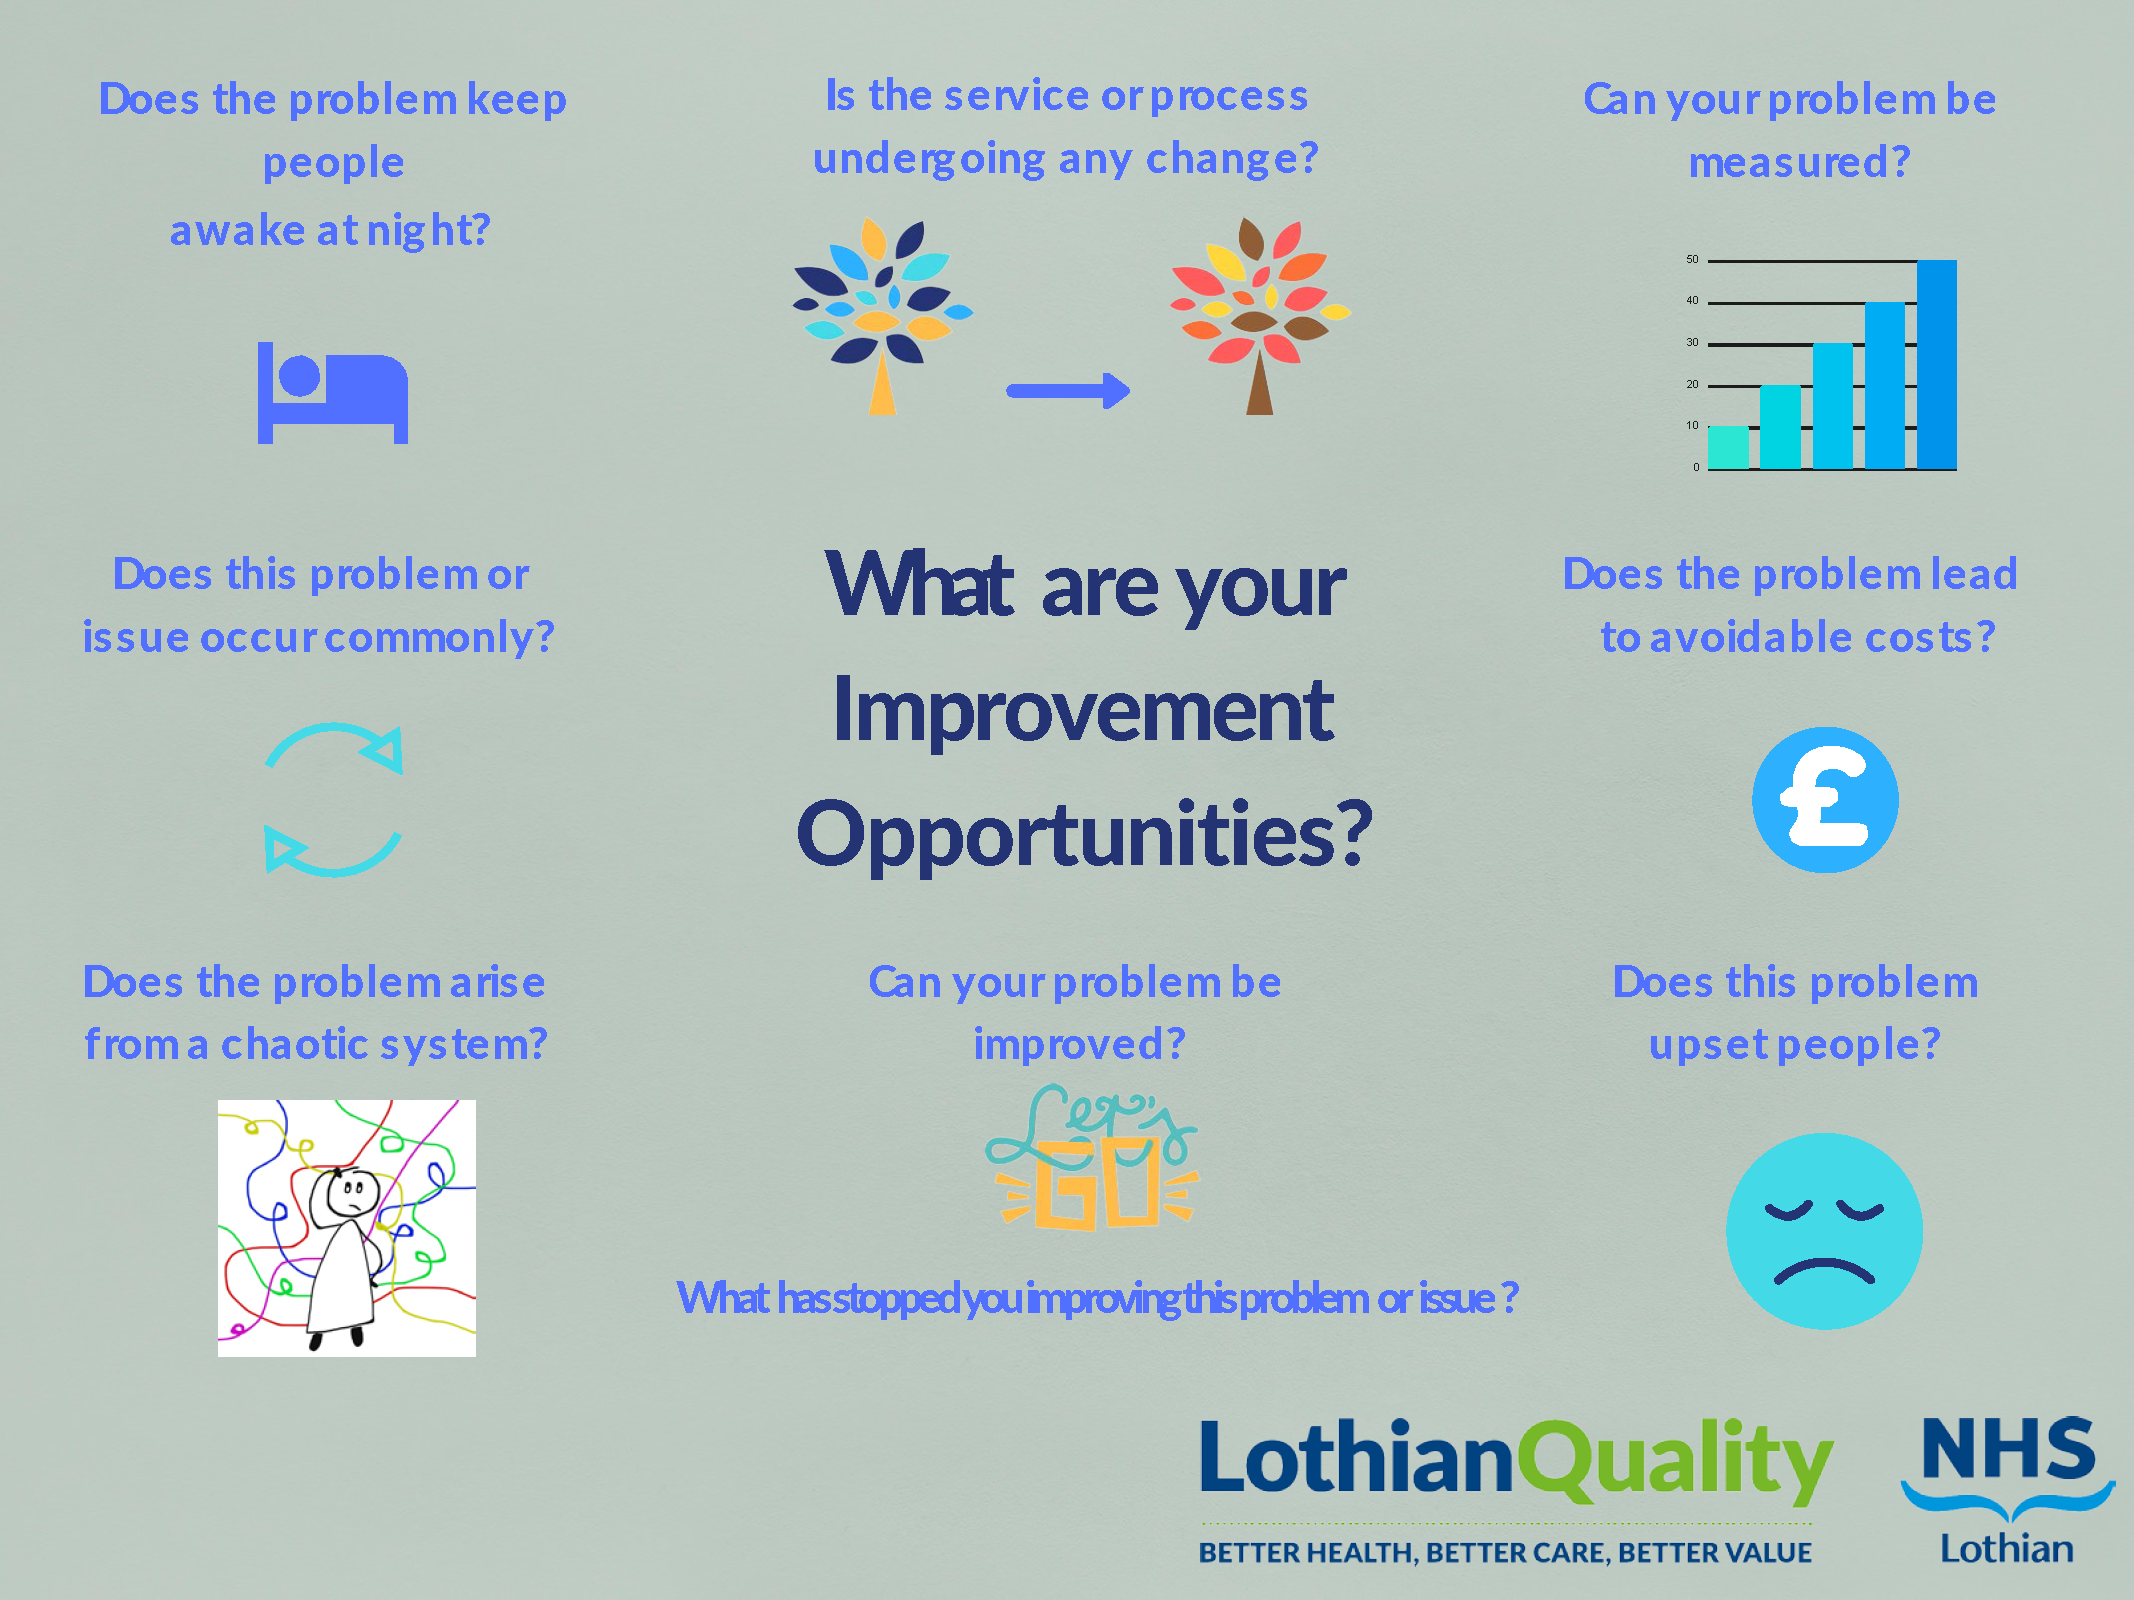 What are your improvement opportunities - questions_final 2.png